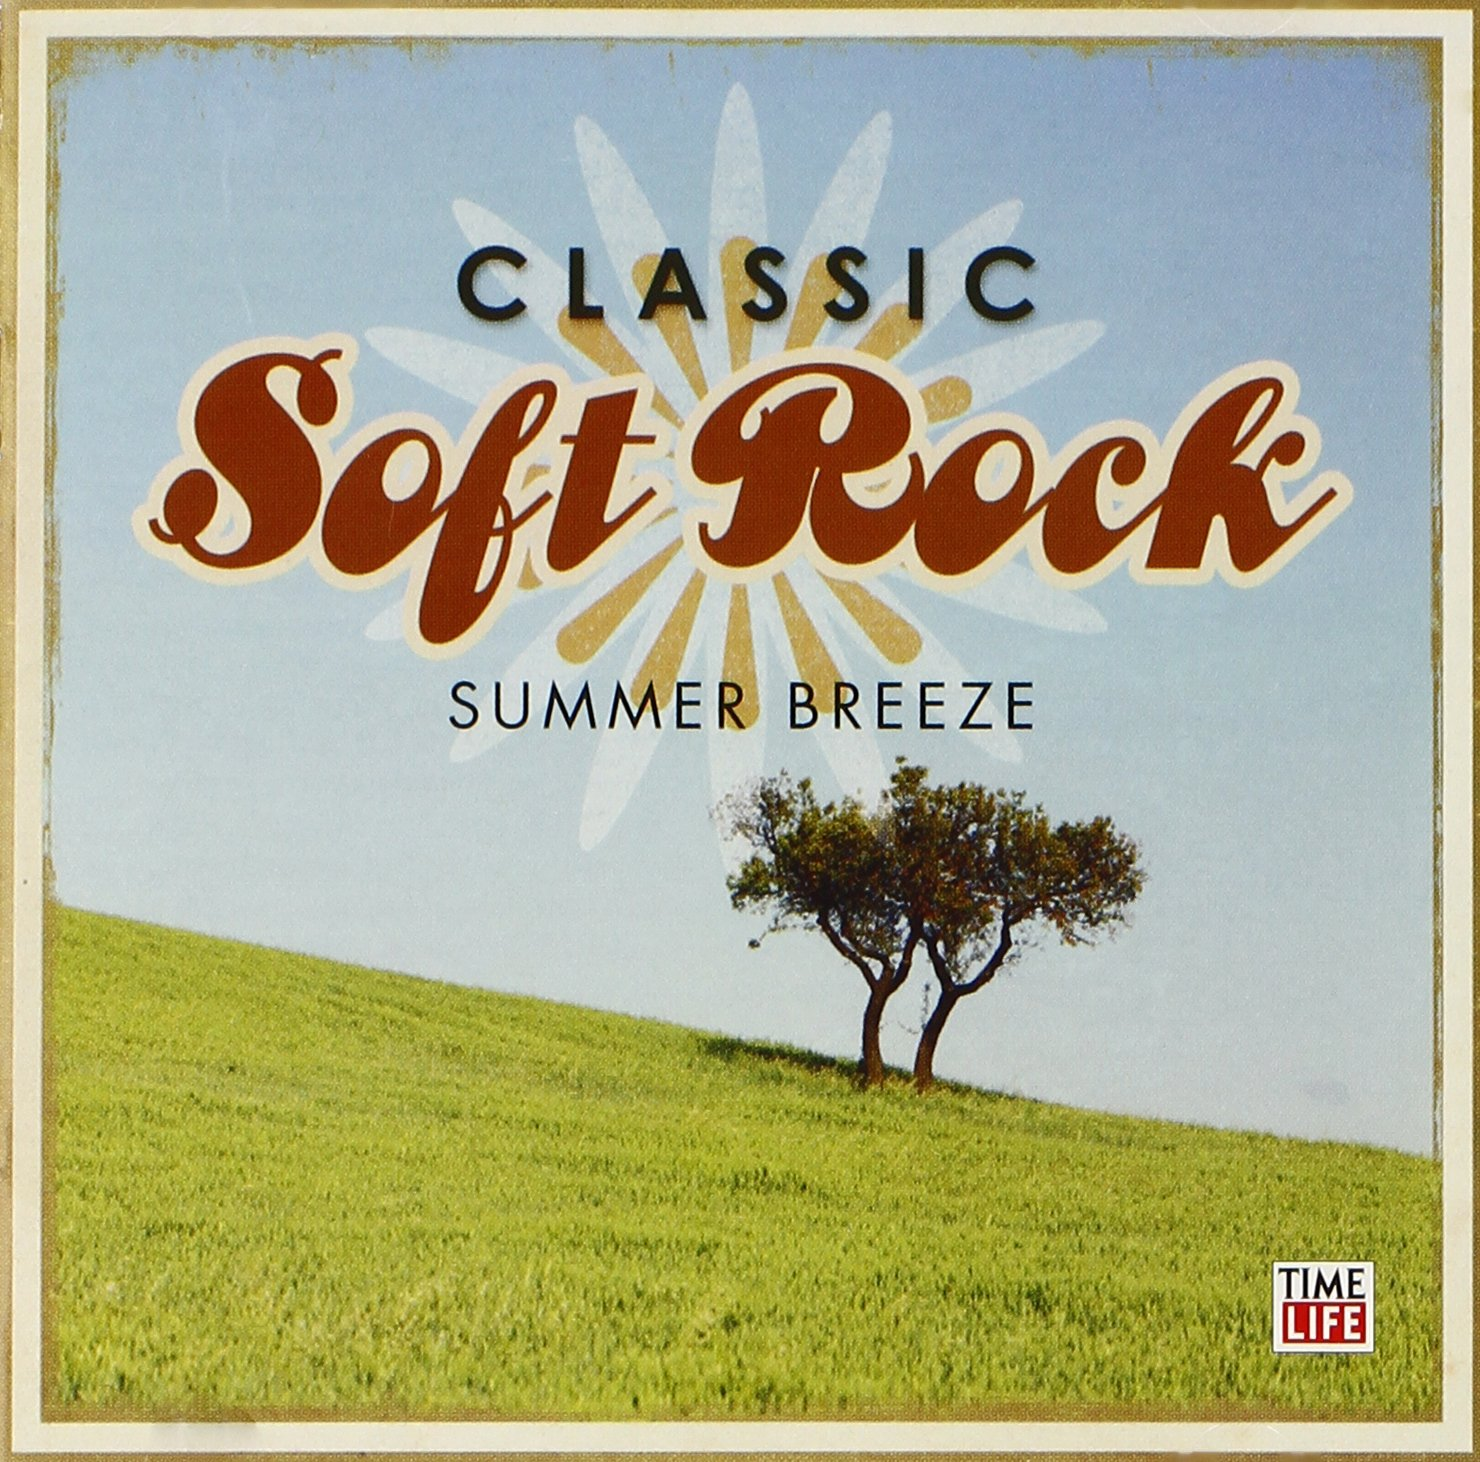 Time Life Classic Soft Rock: Summer Breeze by The One